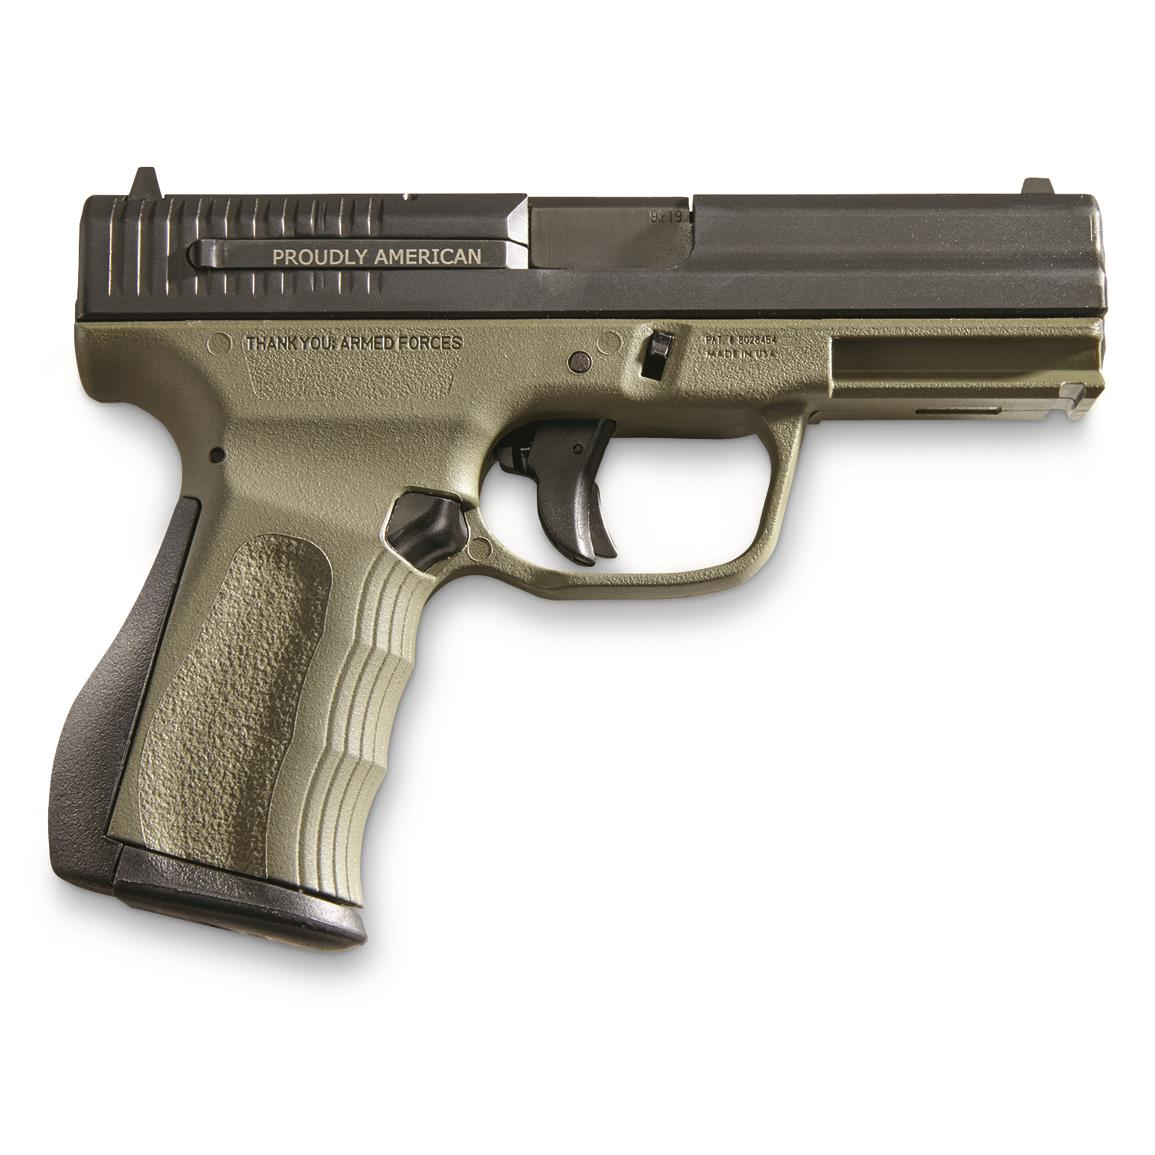 "FMK Firearms 9C1 G2 Compact FAT, Semi-Automatic, 9mm, 4"" Barrel, OD Green, 14+1 Rounds"